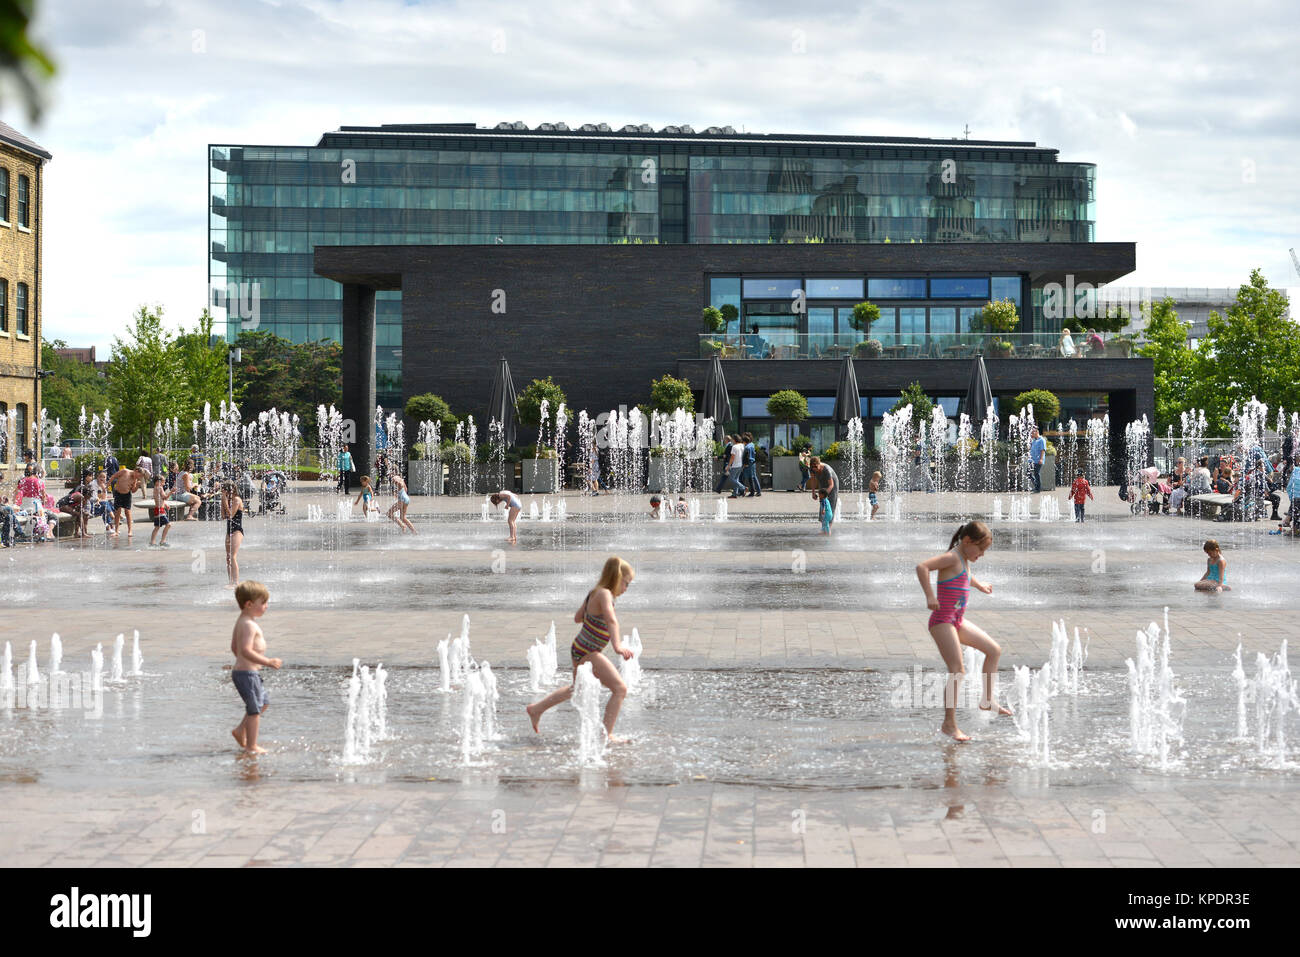 Granary Square, Camden, Kings Cross development, privately owned public space in London, UK - Stock Image